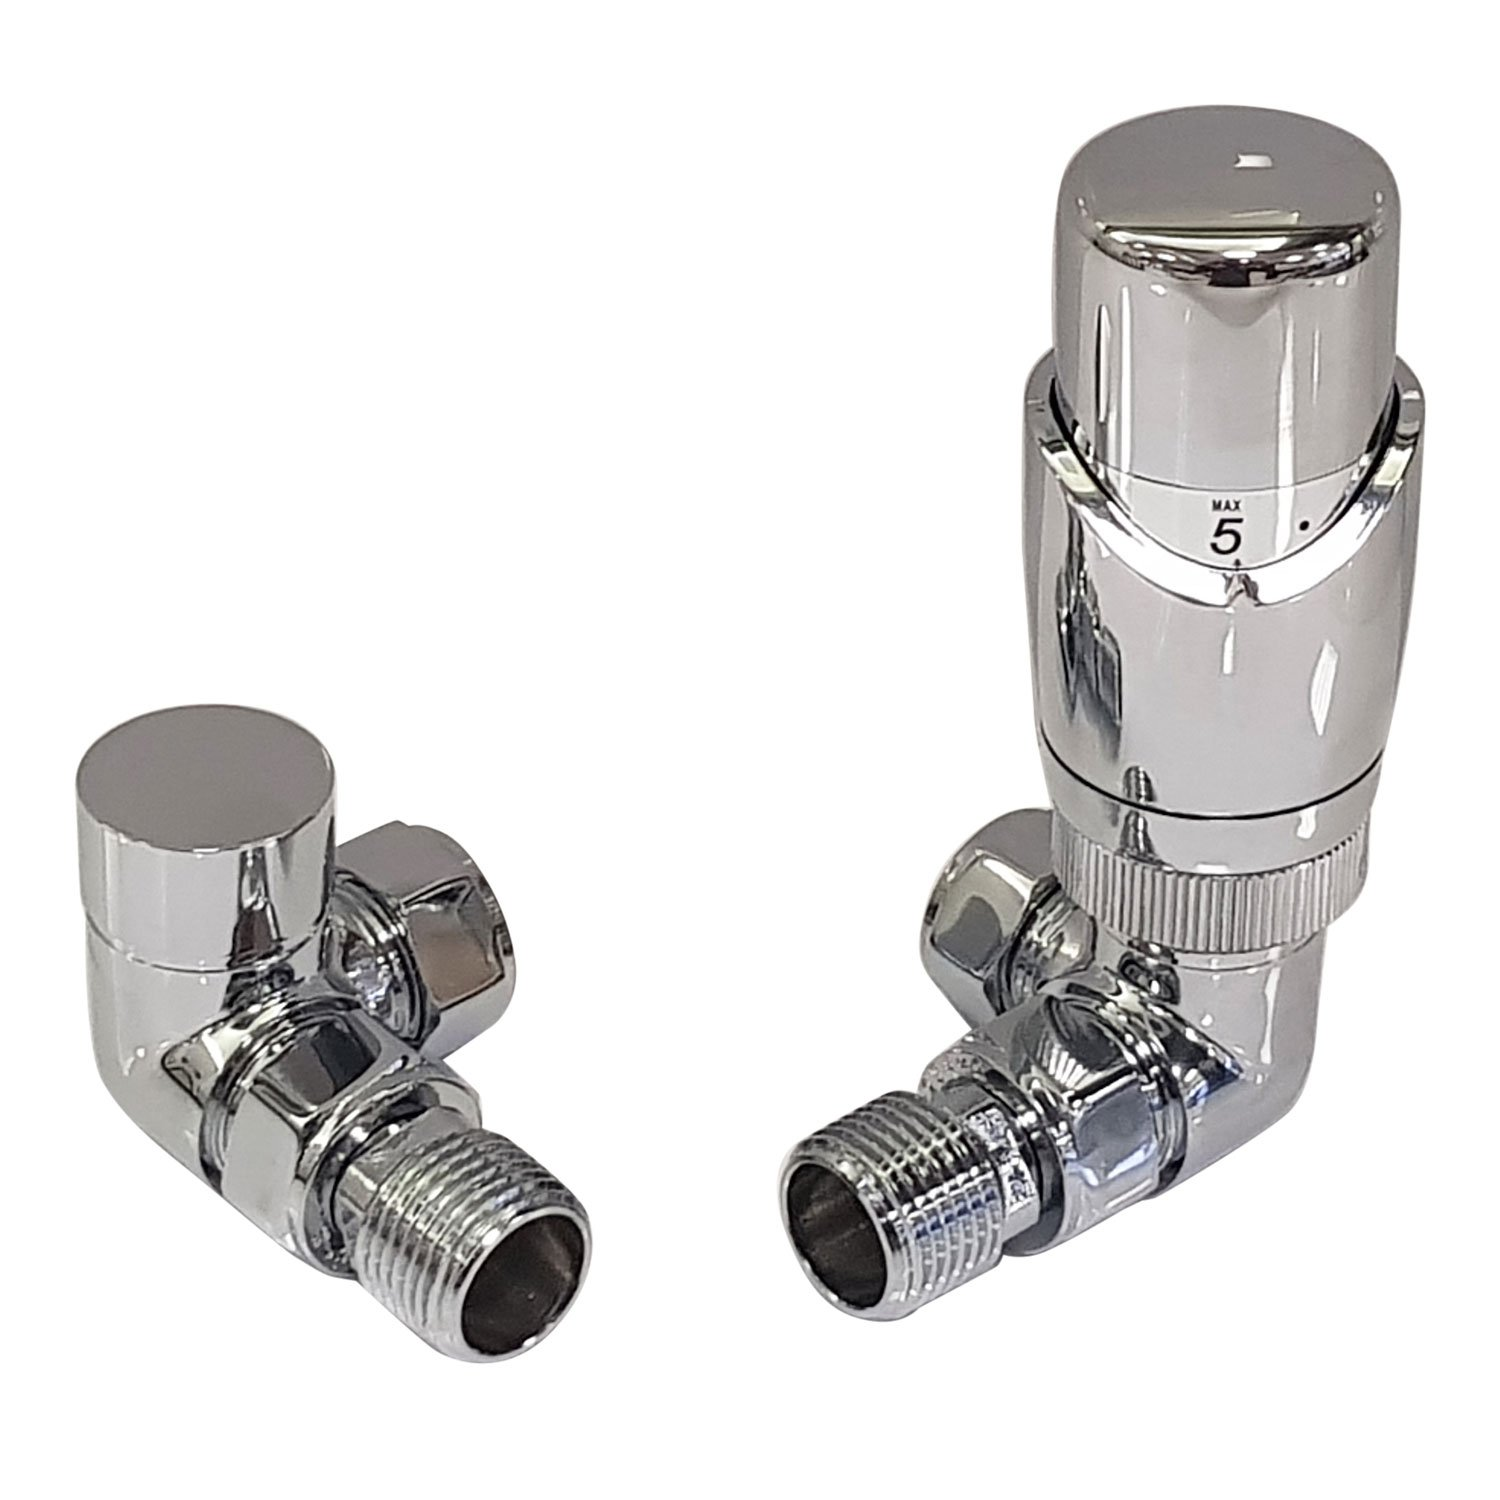 Thermostatic Radiator Valve Set - Chrome Radiator Valves inc. Corner TRV & Lockshield | Caldo Sidato CLD-CRC-TRV